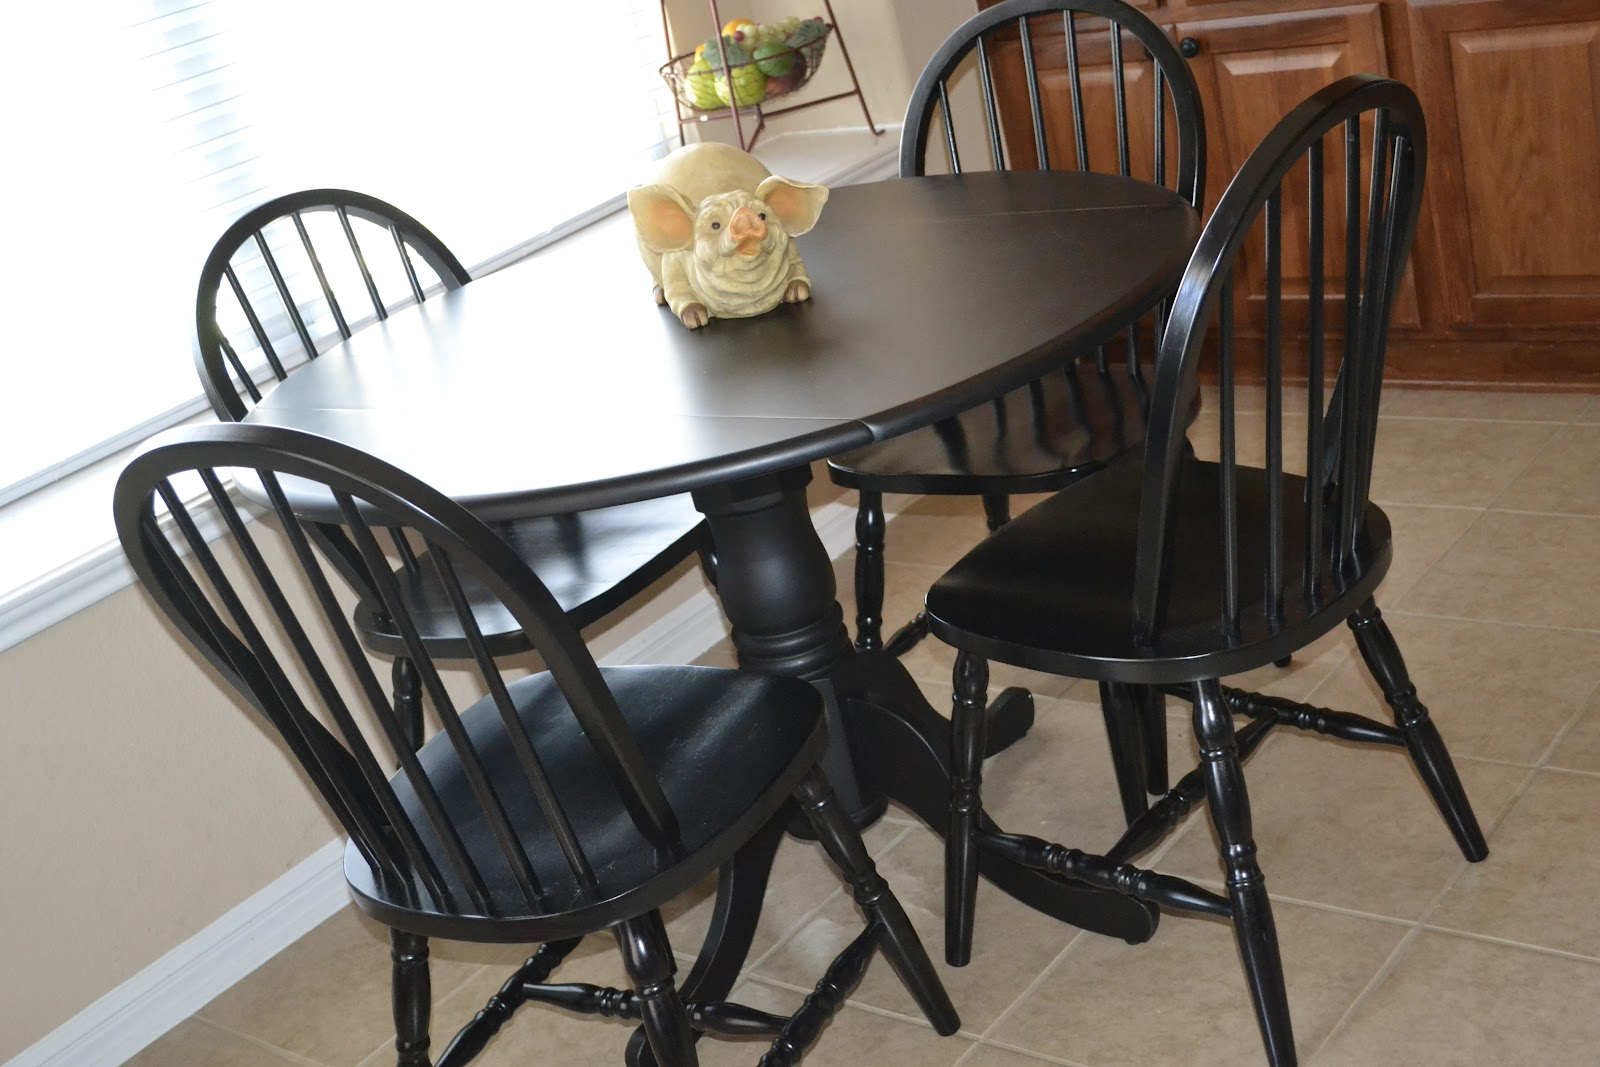 Round black kitchen table and chairs photo - 2